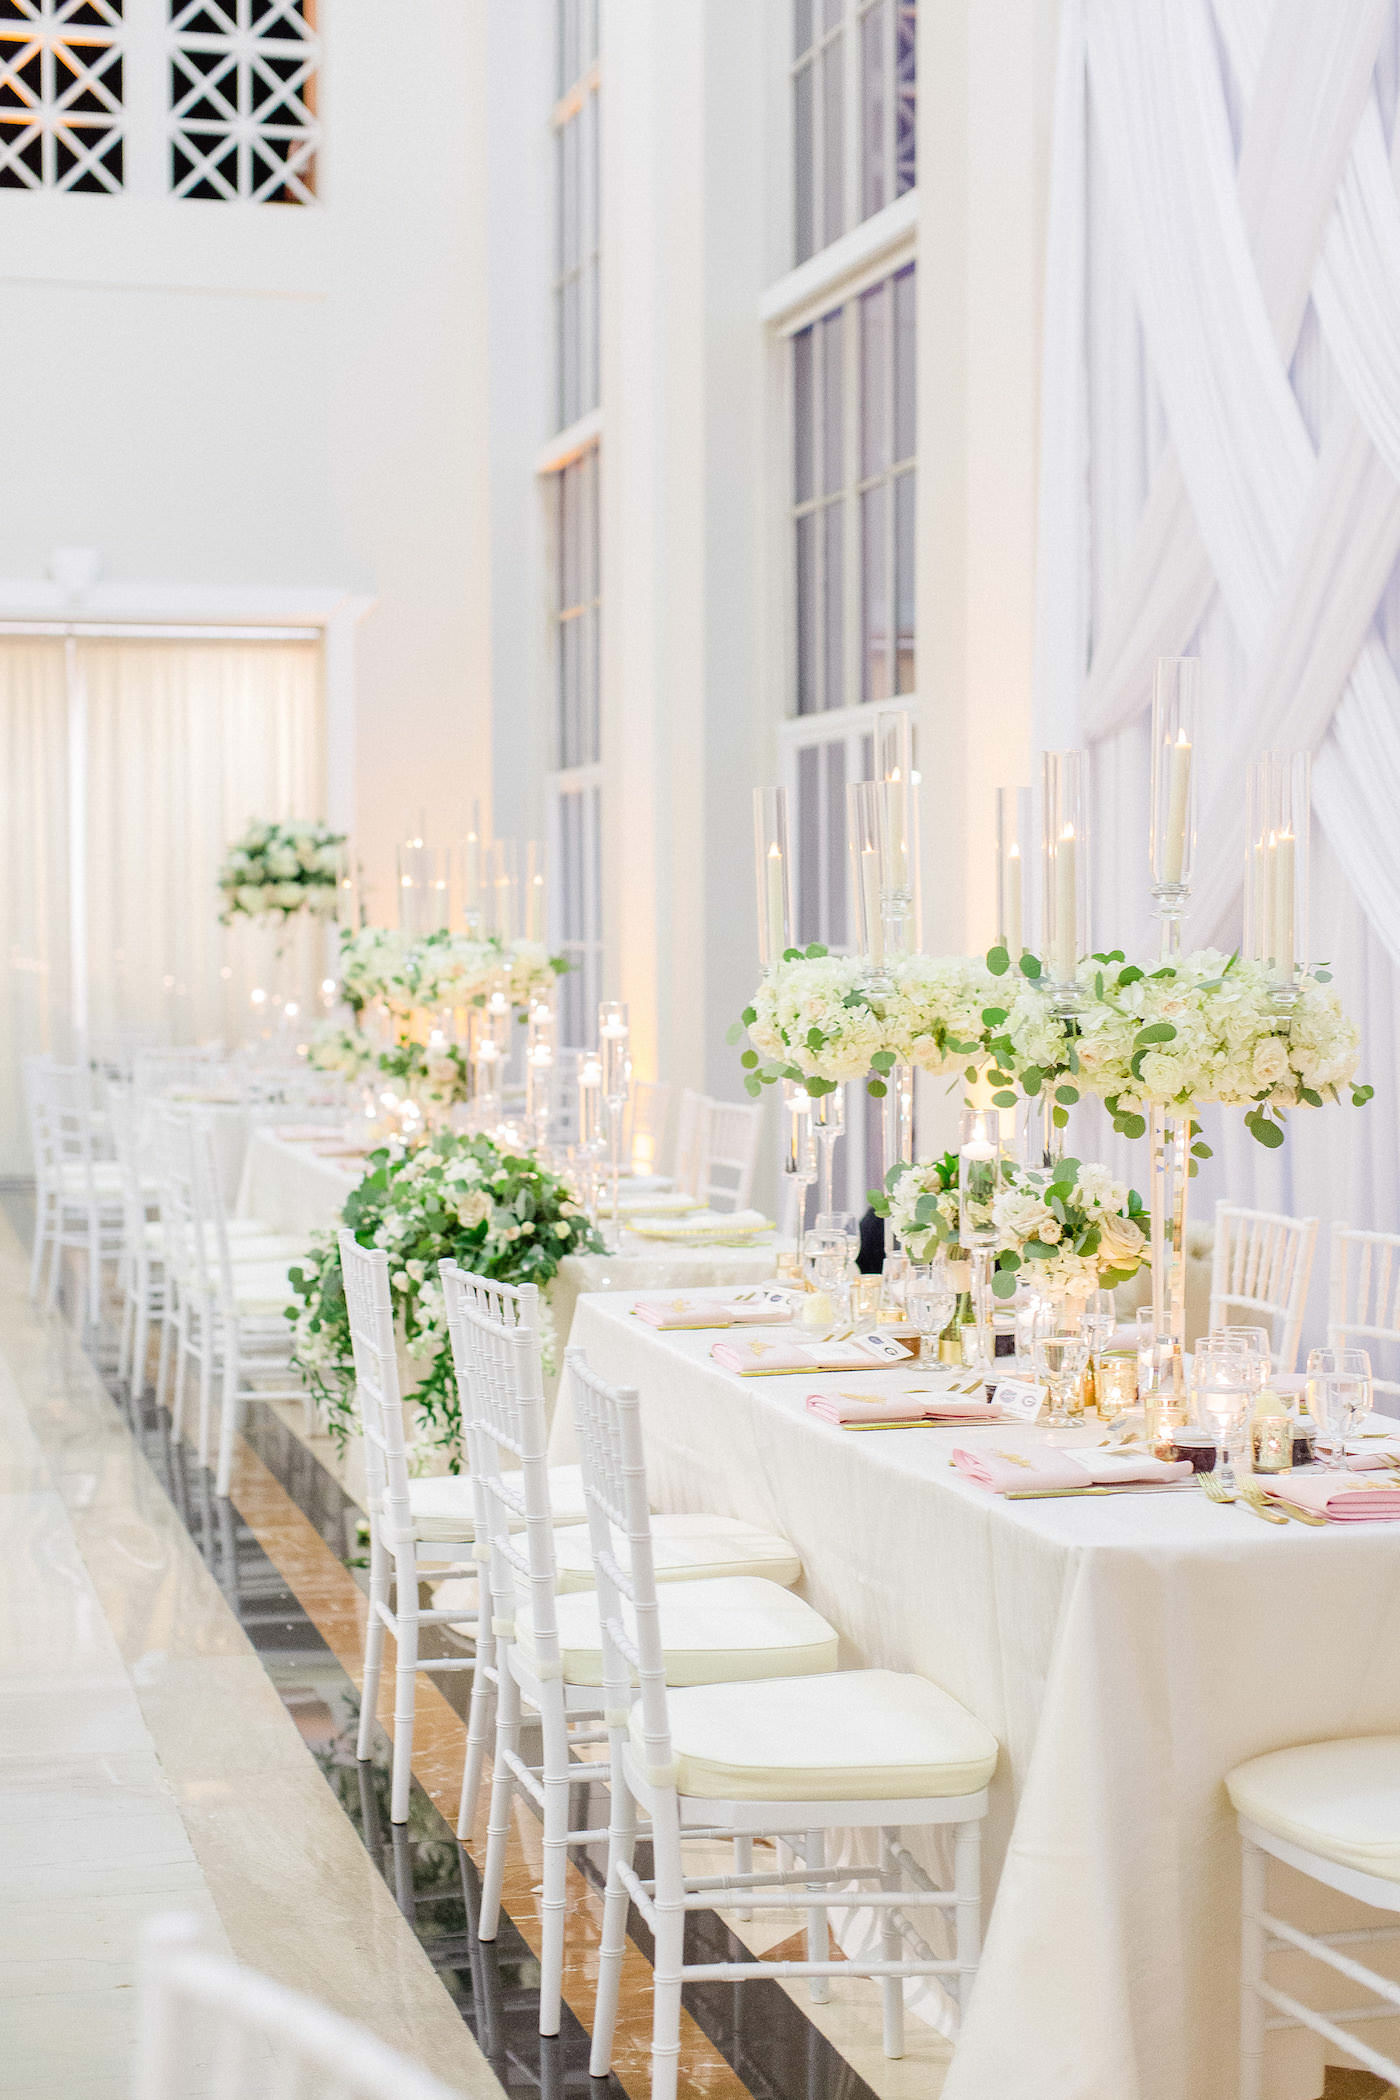 Classic Wedding Reception and Decor, with Long Feasting Tables, White Draping, Tall Floral Centerpieces on Crystal Candelabra with Greenery and Ivory Hydrangea Flowers, White Chiavari Chairs | Downtown Tampa Wedding Venue The Vault | Florida Wedding Planner Breezin' Weddings